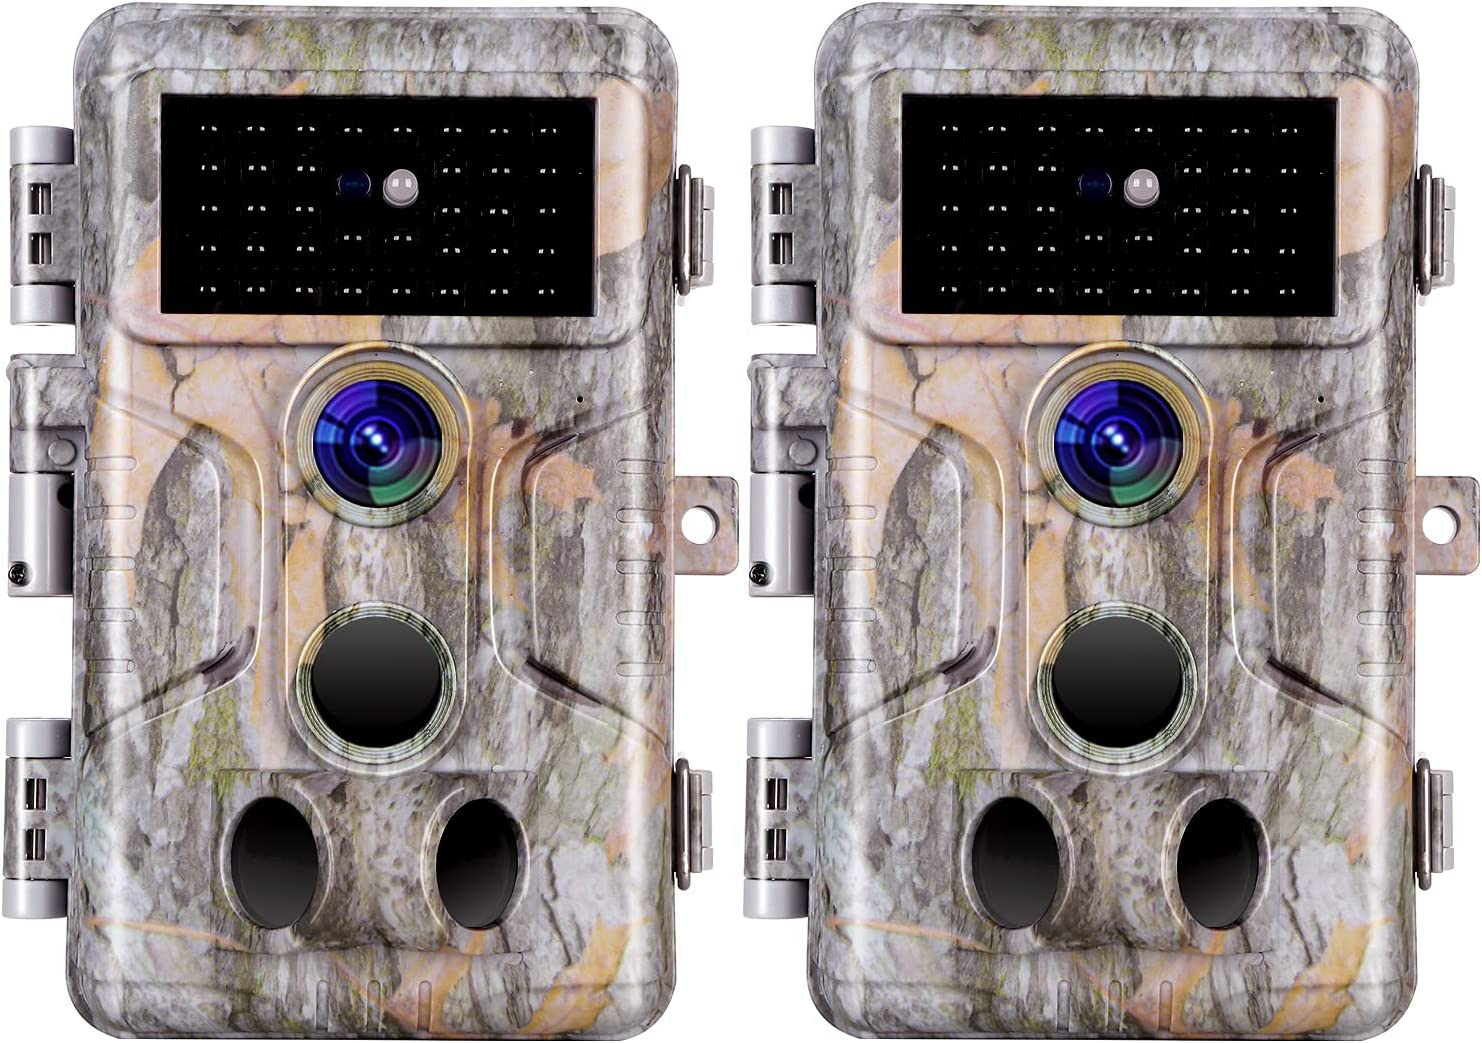 2-Pack Outdoor Stealth Trail Game Deer 1296 No 70% OFF Outlet 24MP Max 79% OFF Cameras Glow